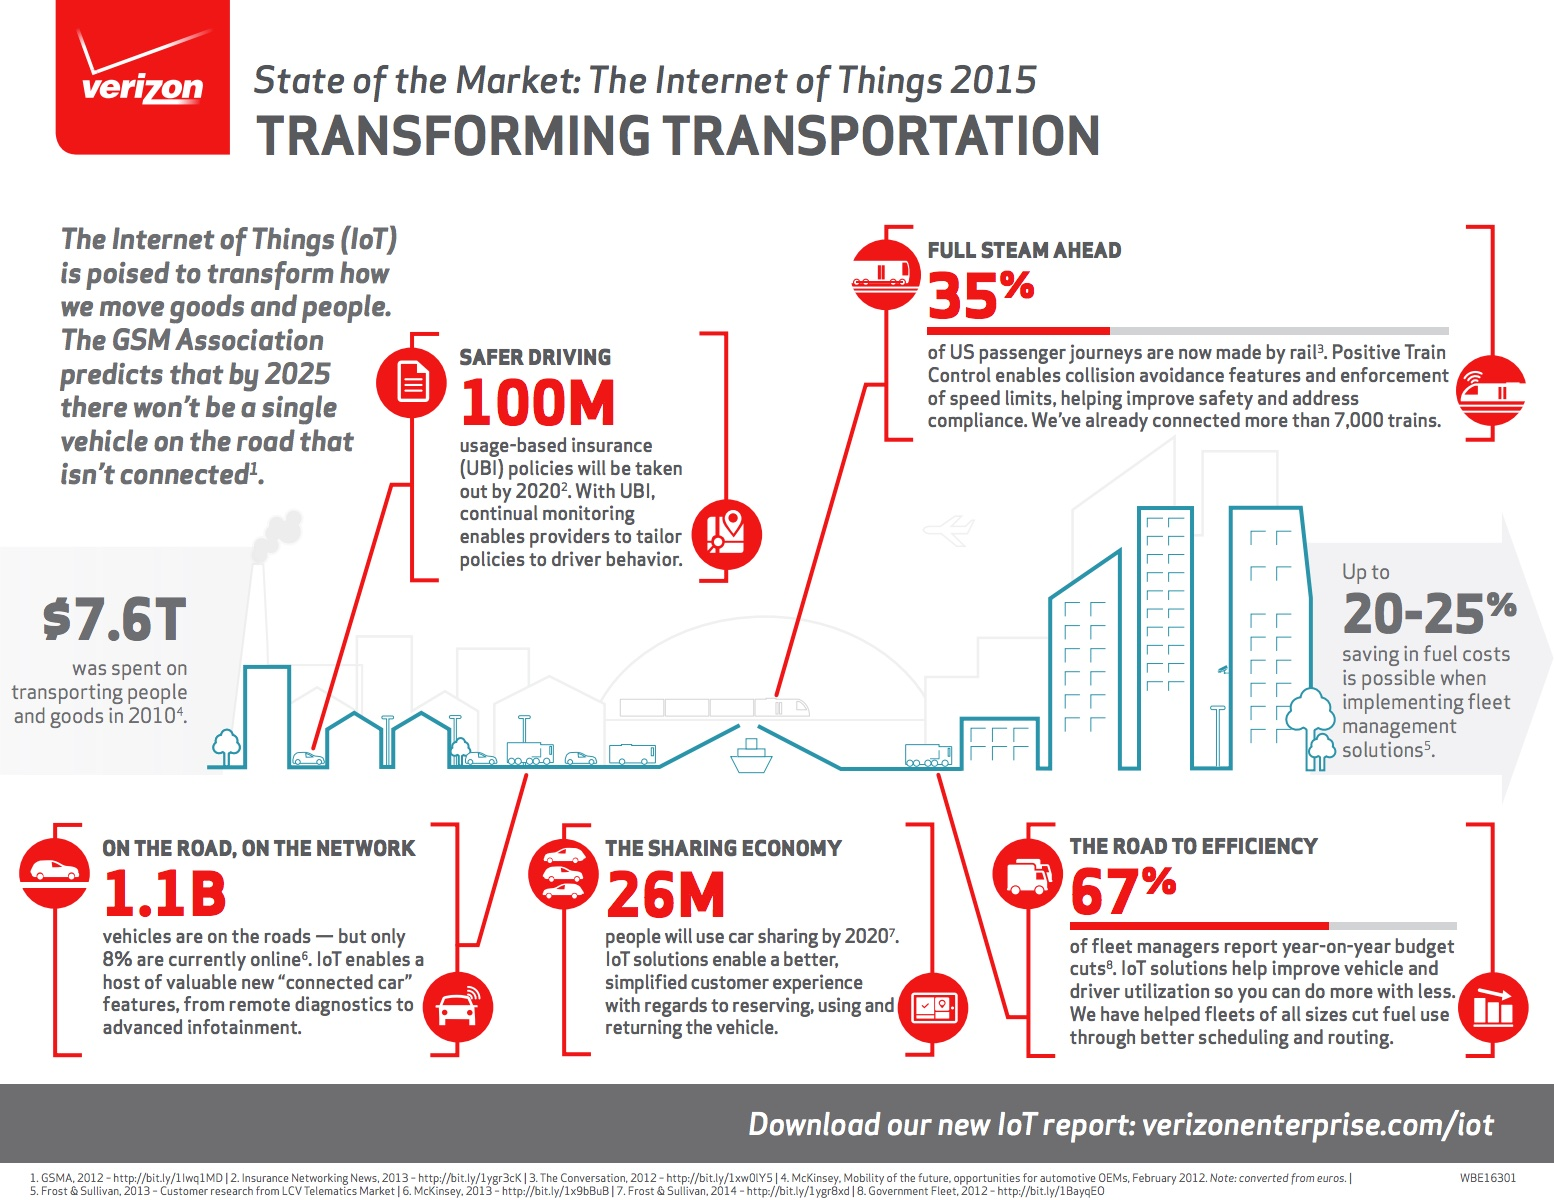 www_verizonenterprise_com_resources_infographic_ig_transforming-transportation_en_xg_pdf